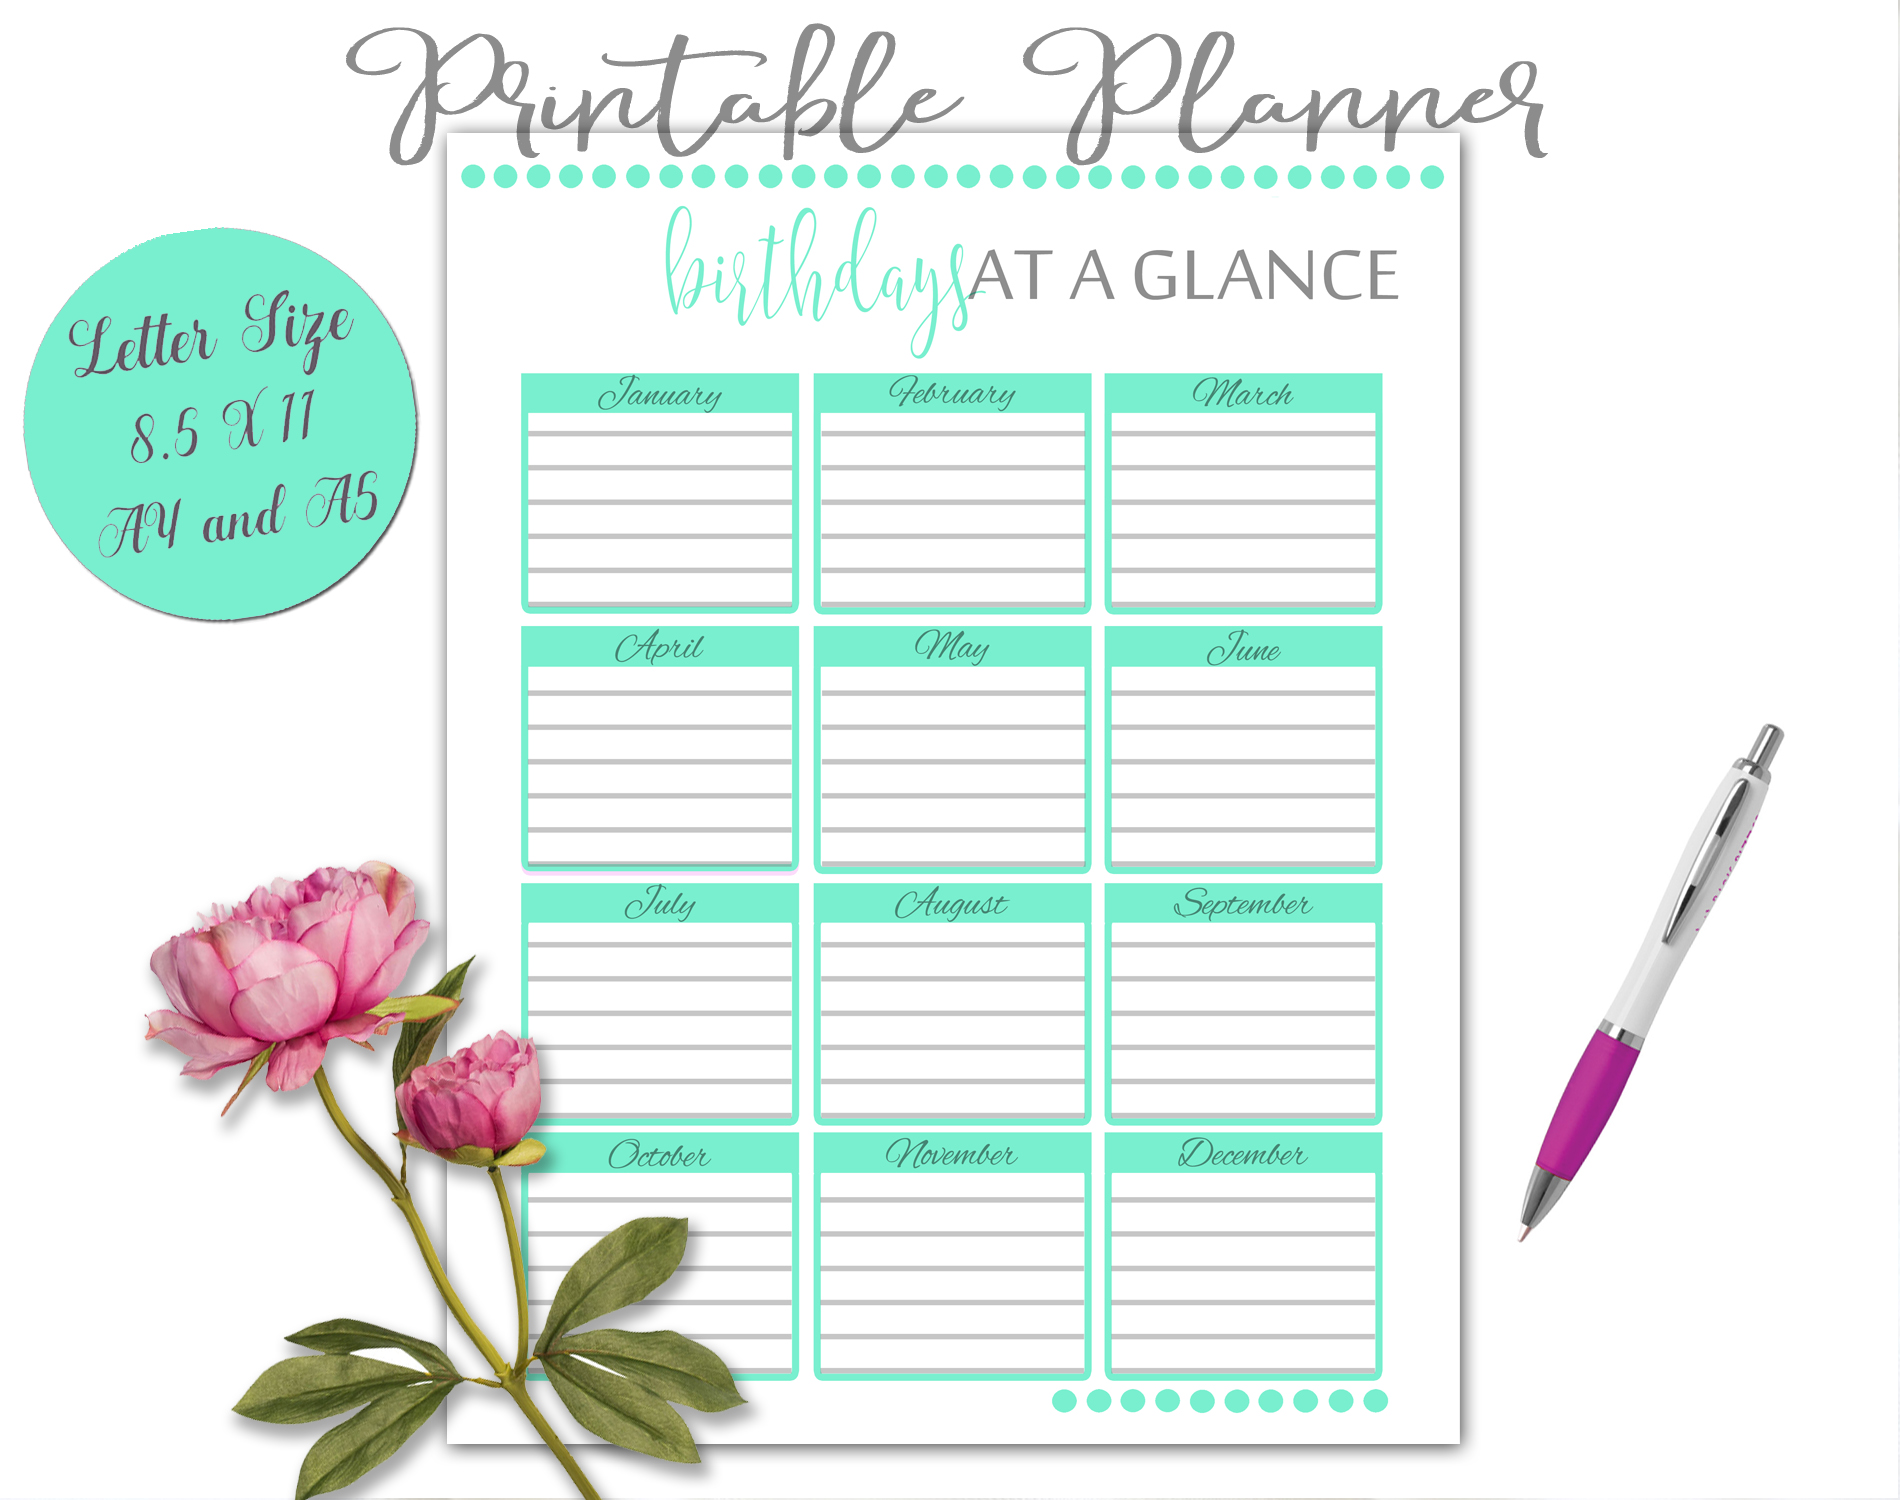 Printable Daily Weekly Monthly Planner Sheets example image 3